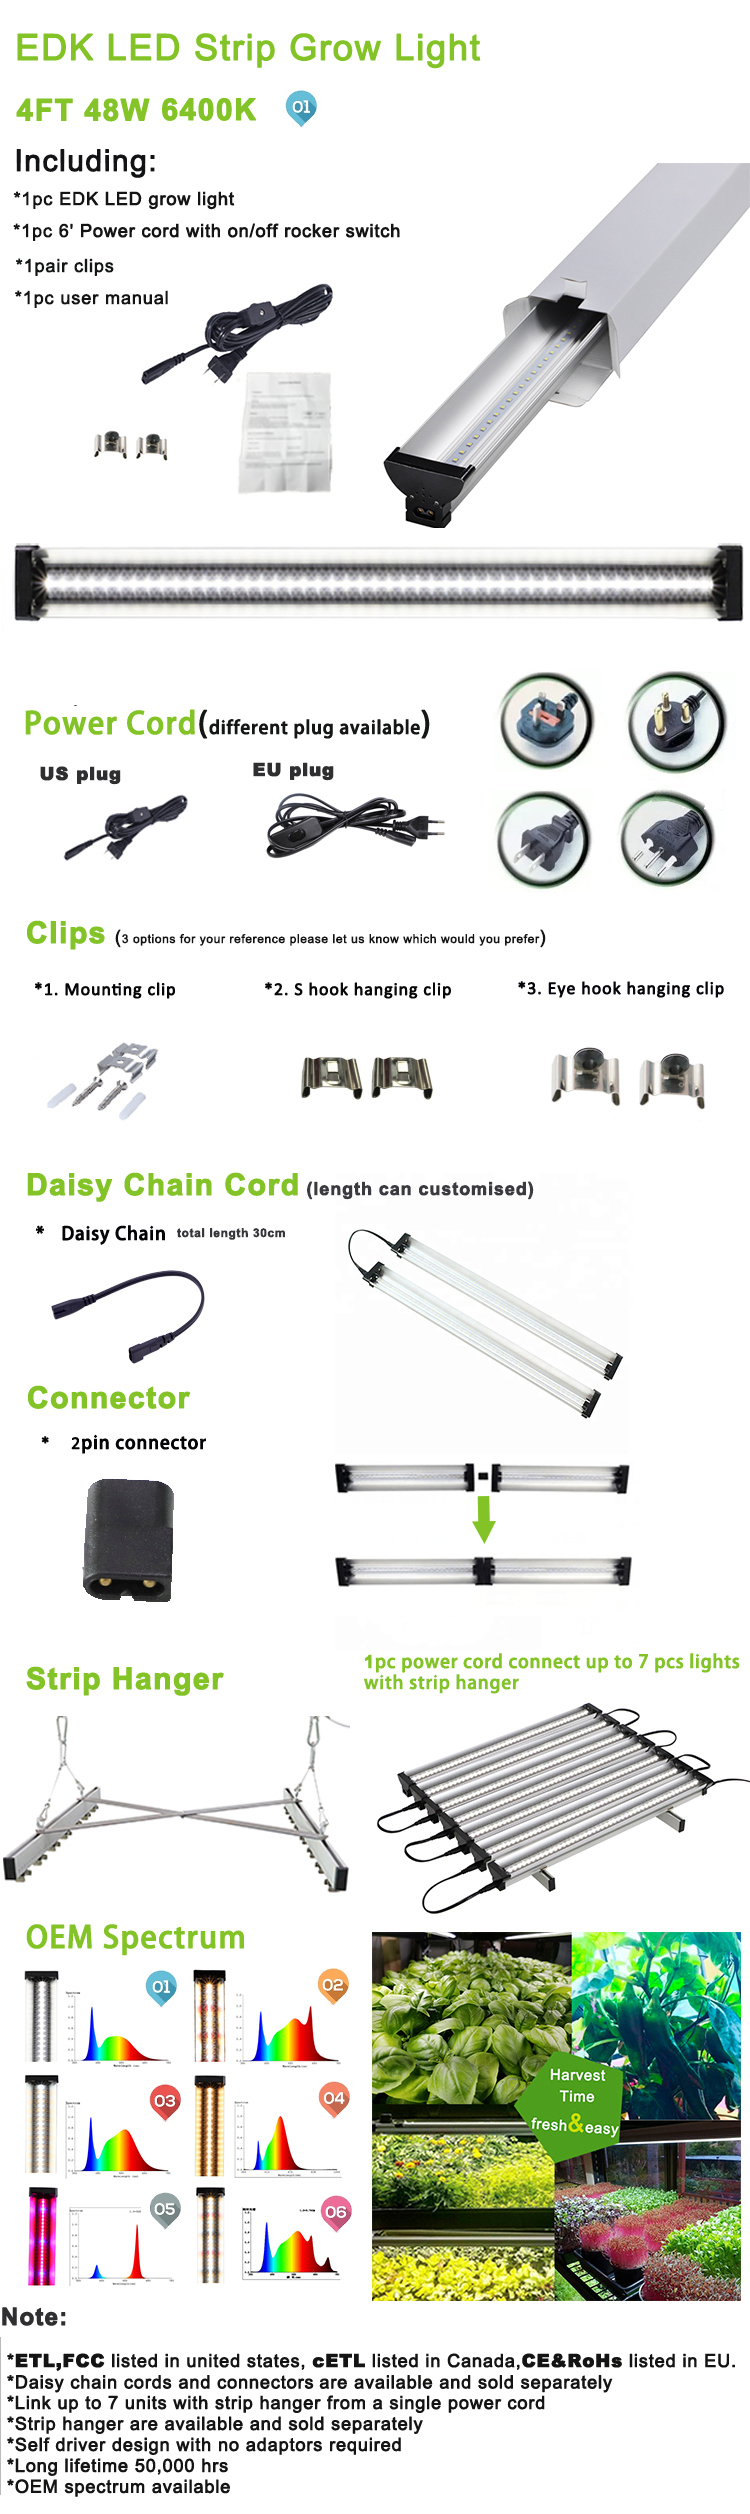 hydroponics equipment vegetable growing 48 inch 48w chip led board aquarium tomato strip grow light 4 foot housing